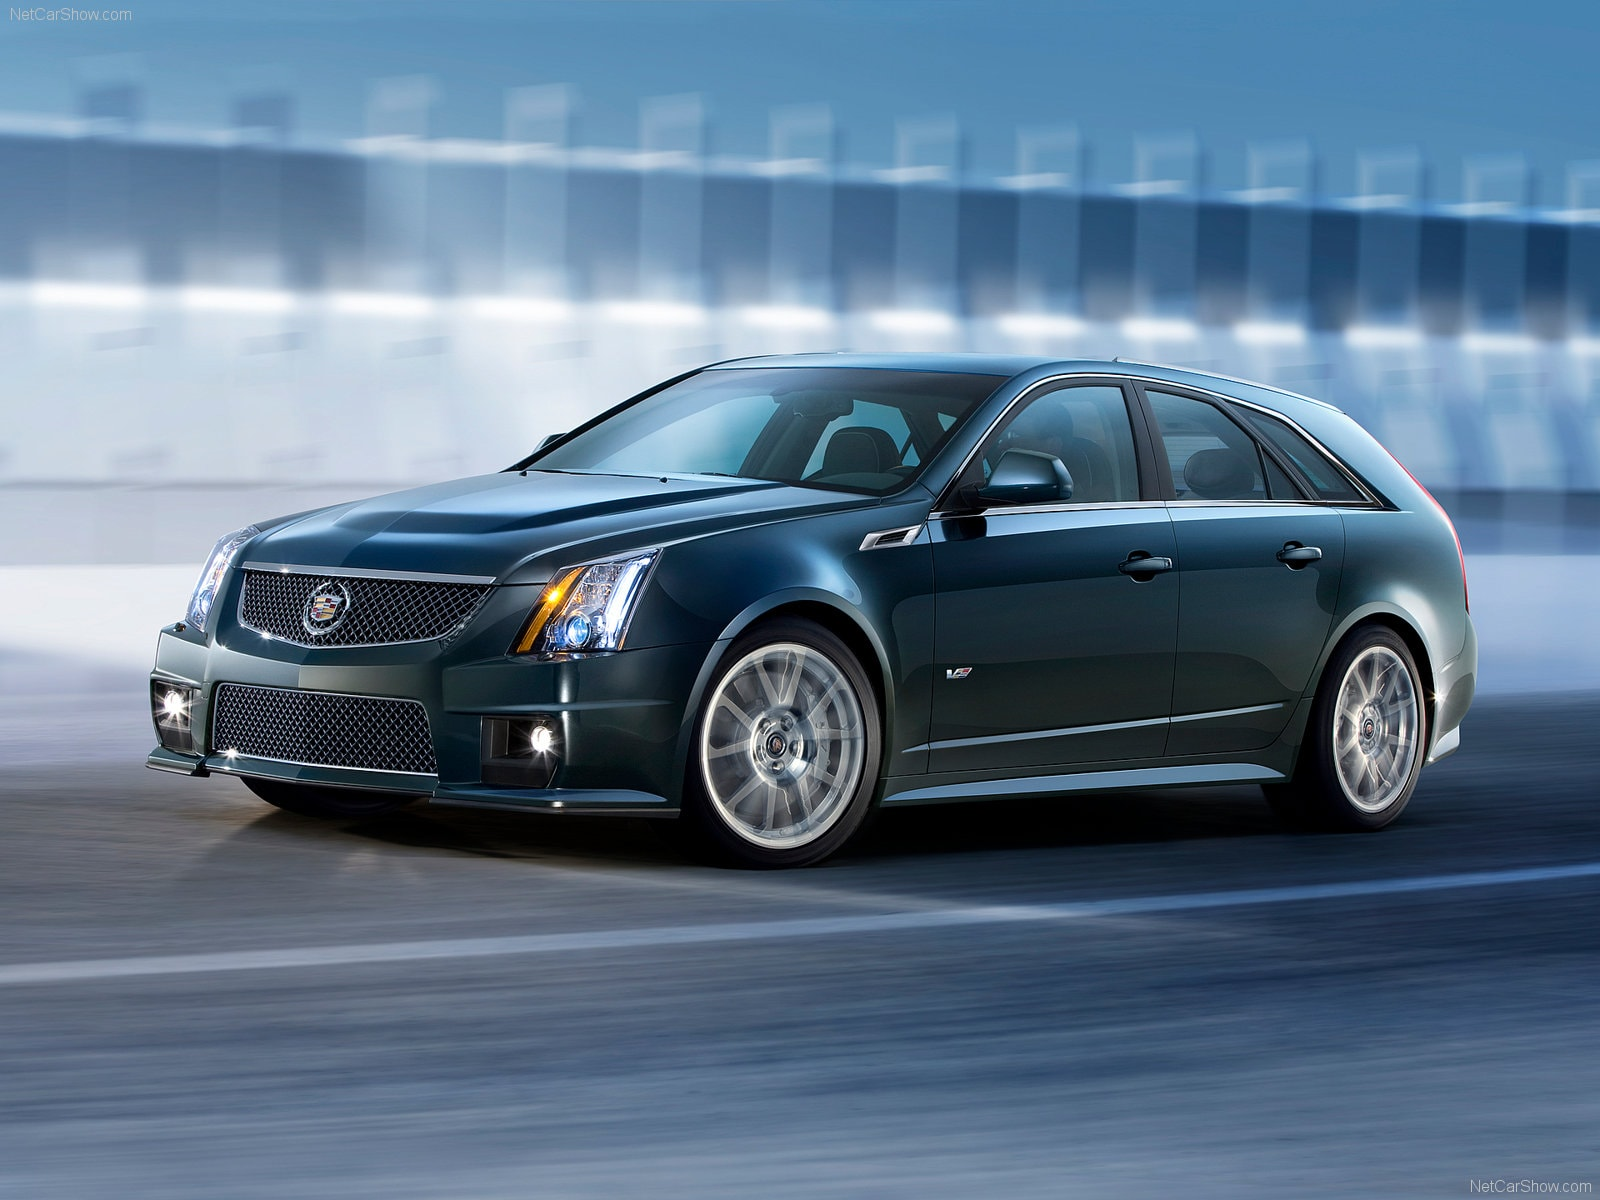 Cadillac CTS-V Wagon HQ wallpapers